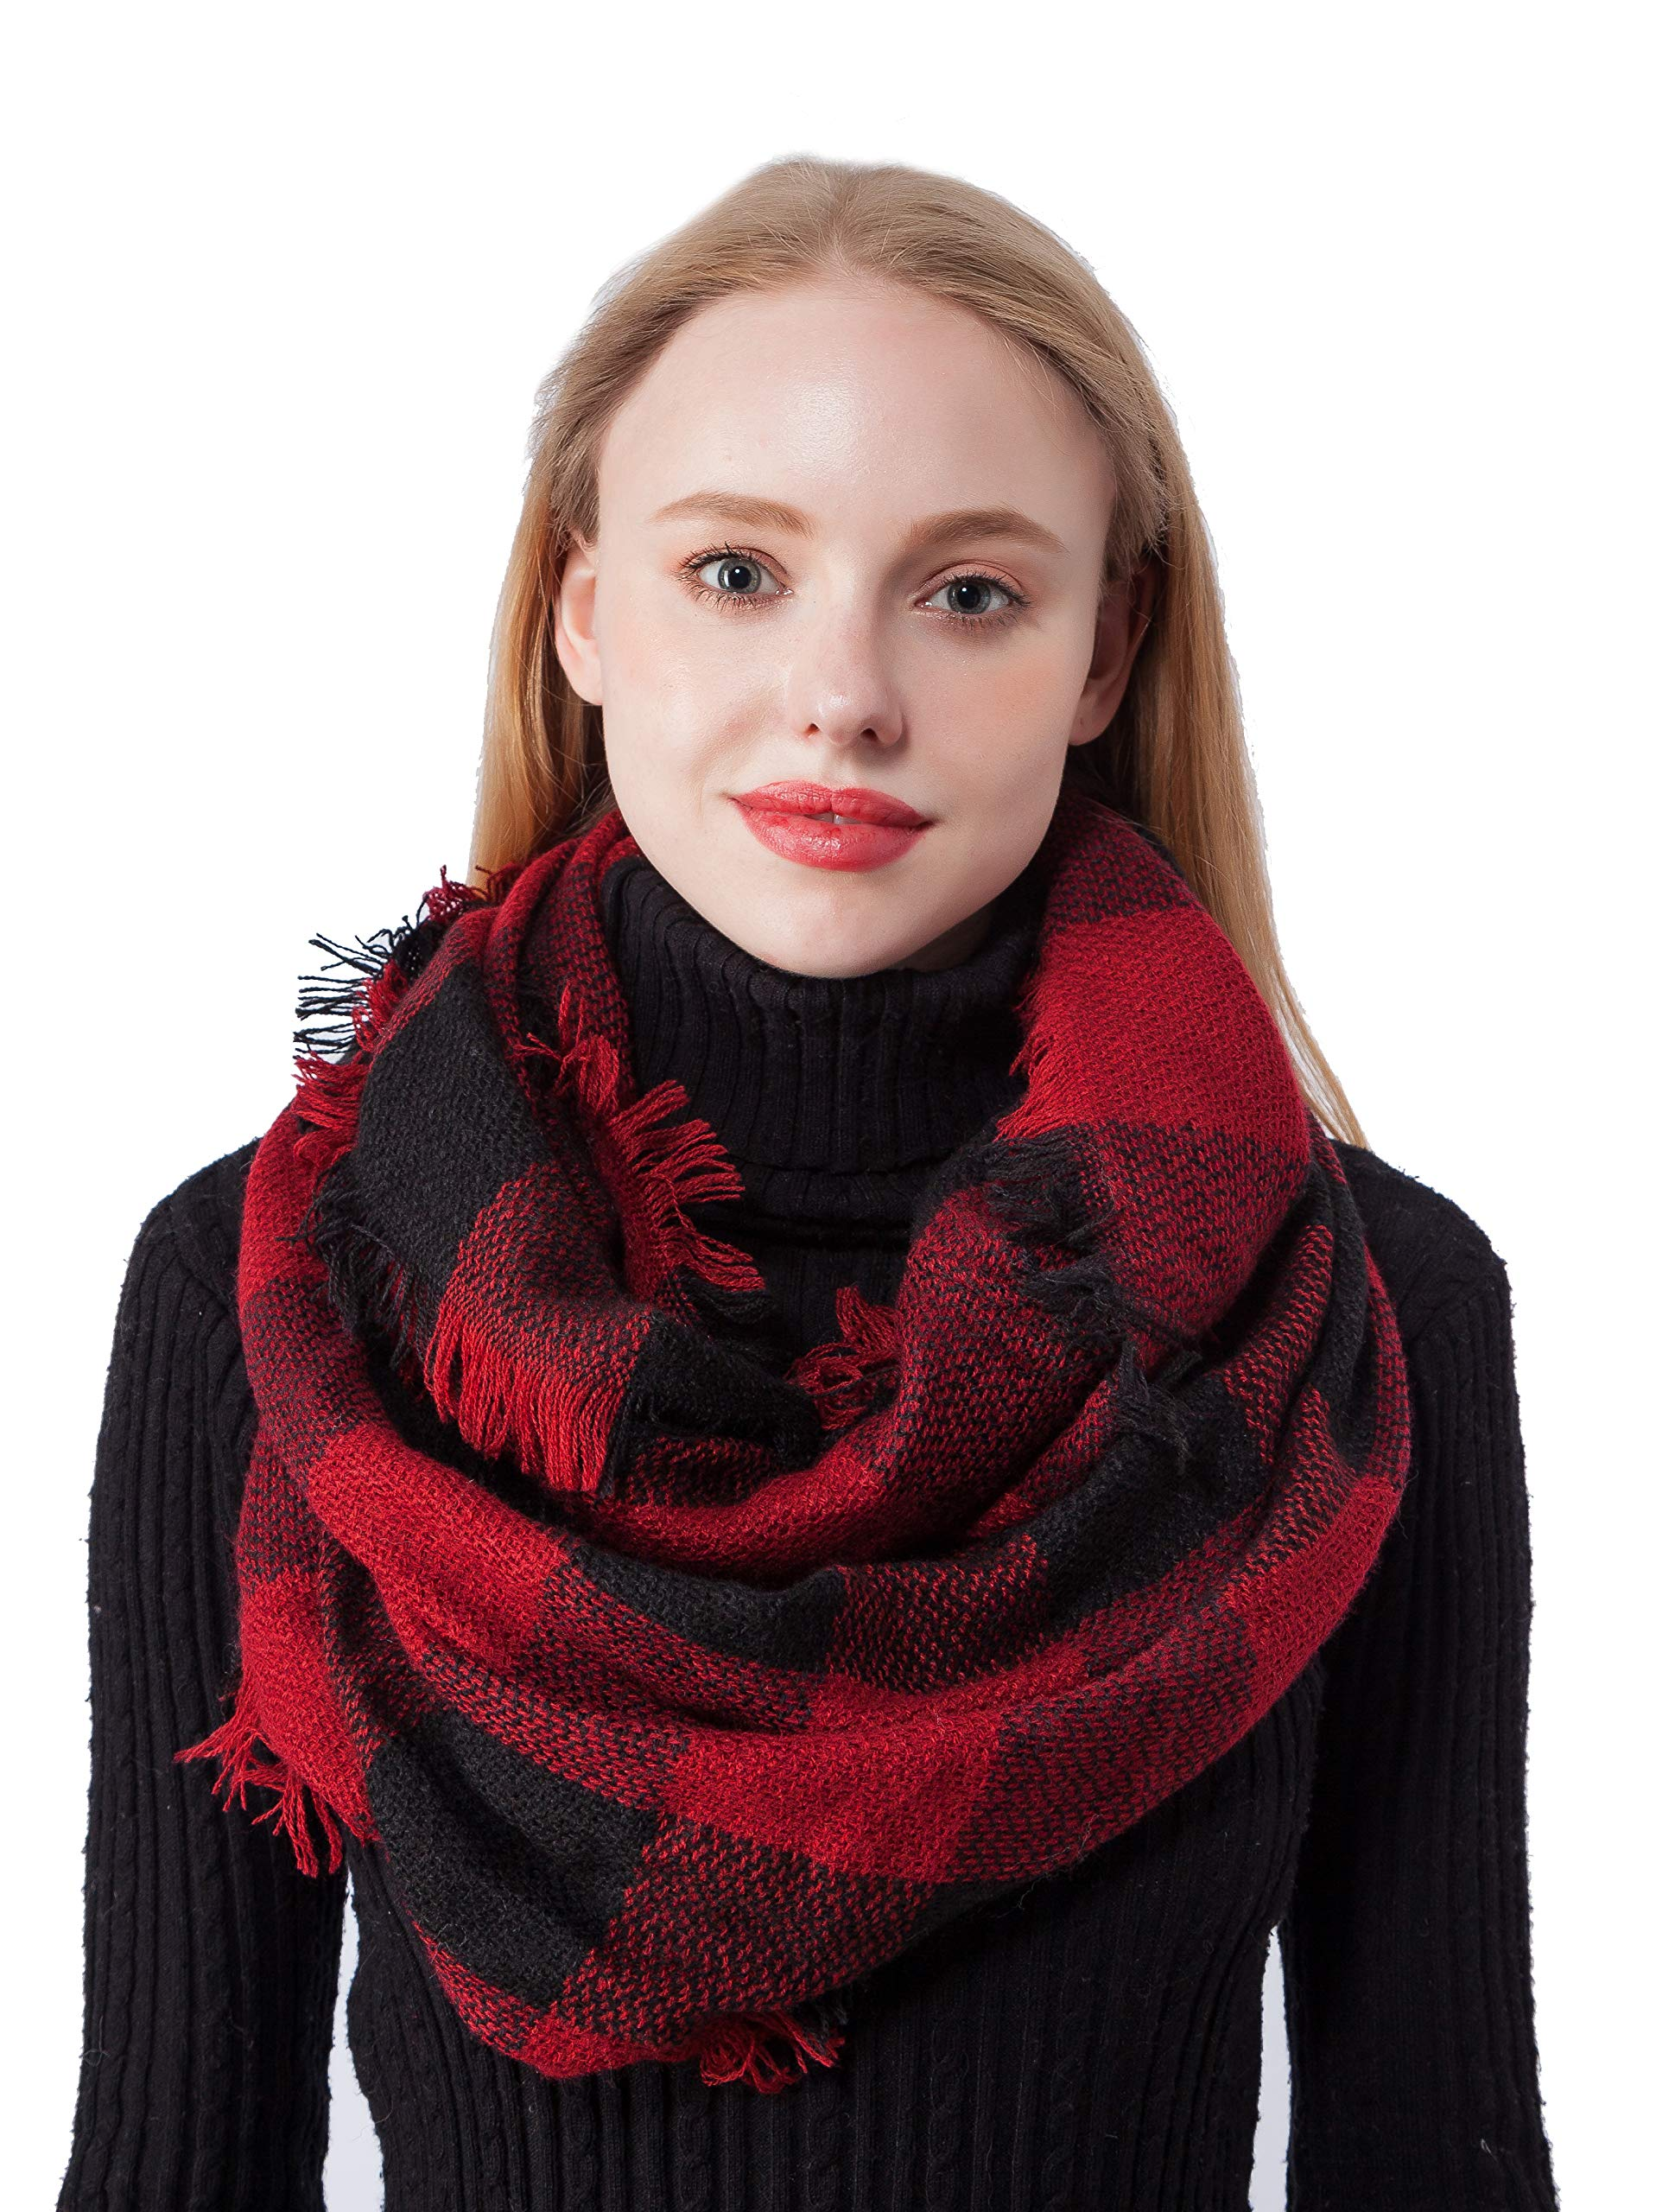 Plaid Infinity Circle Scarf for Women Lightweight Winter Warm Knitting Scarves (Knitting Black+Red)